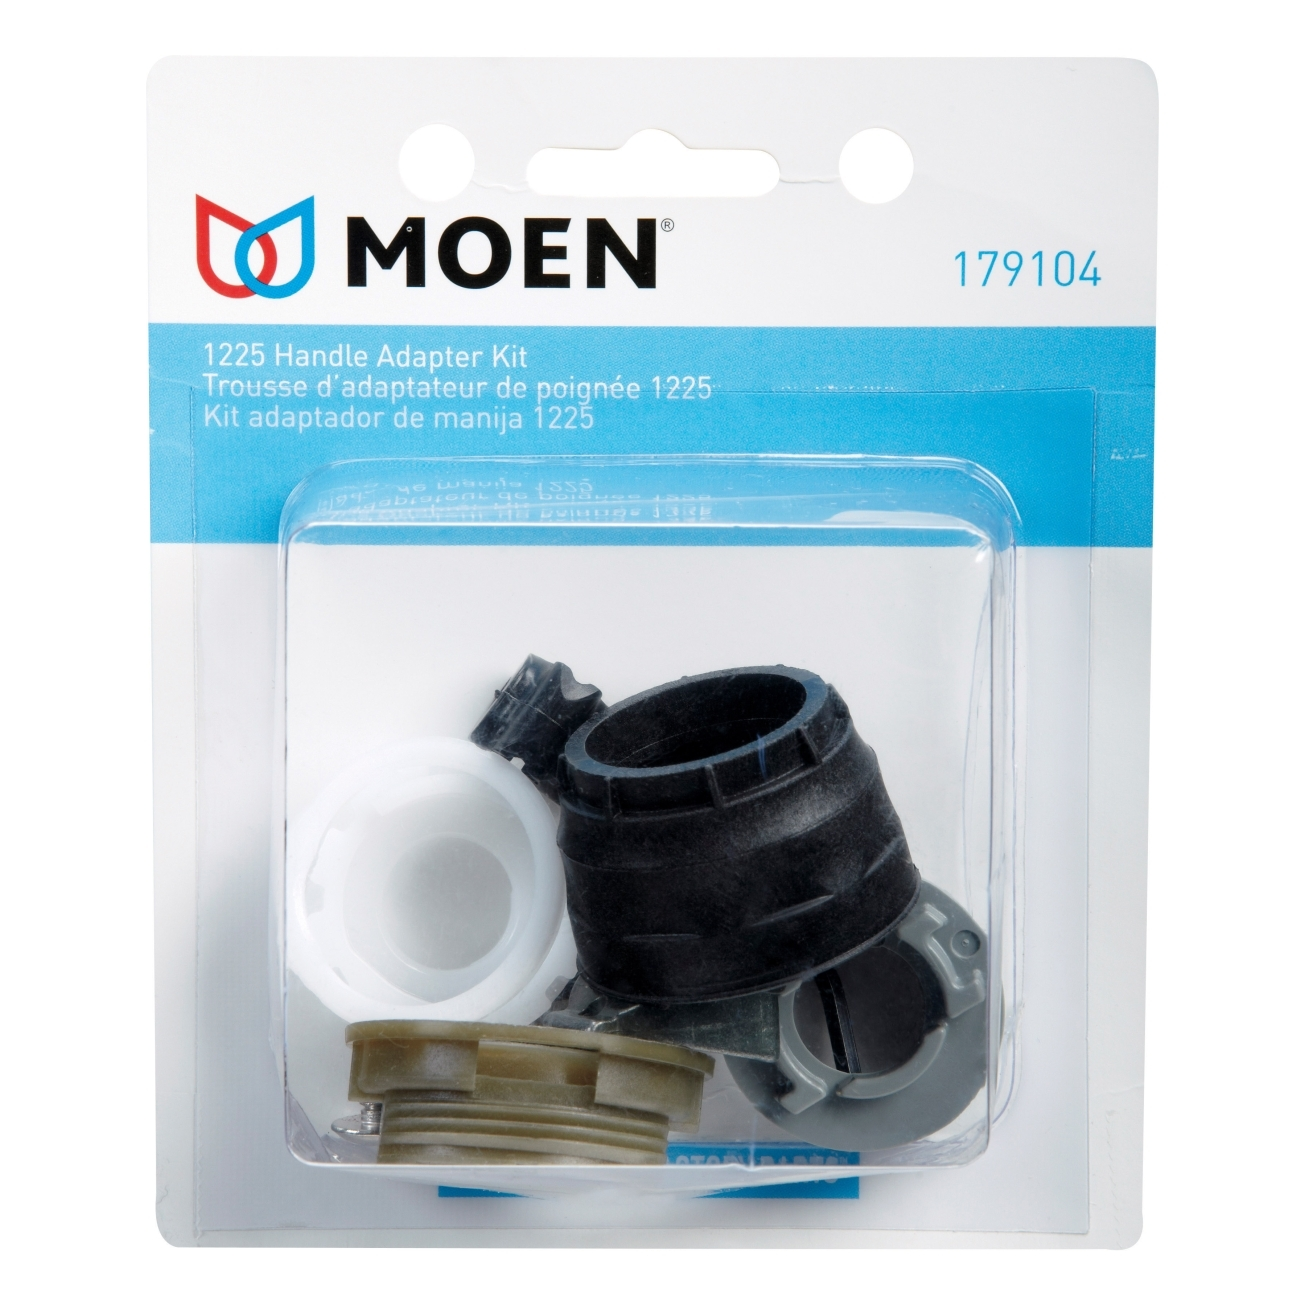 Ideas, moen kitchen faucet mounting bracket moen kitchen faucet mounting bracket moen faucet parts and cartridge replacements at ace hardware 1305 x 1305  .